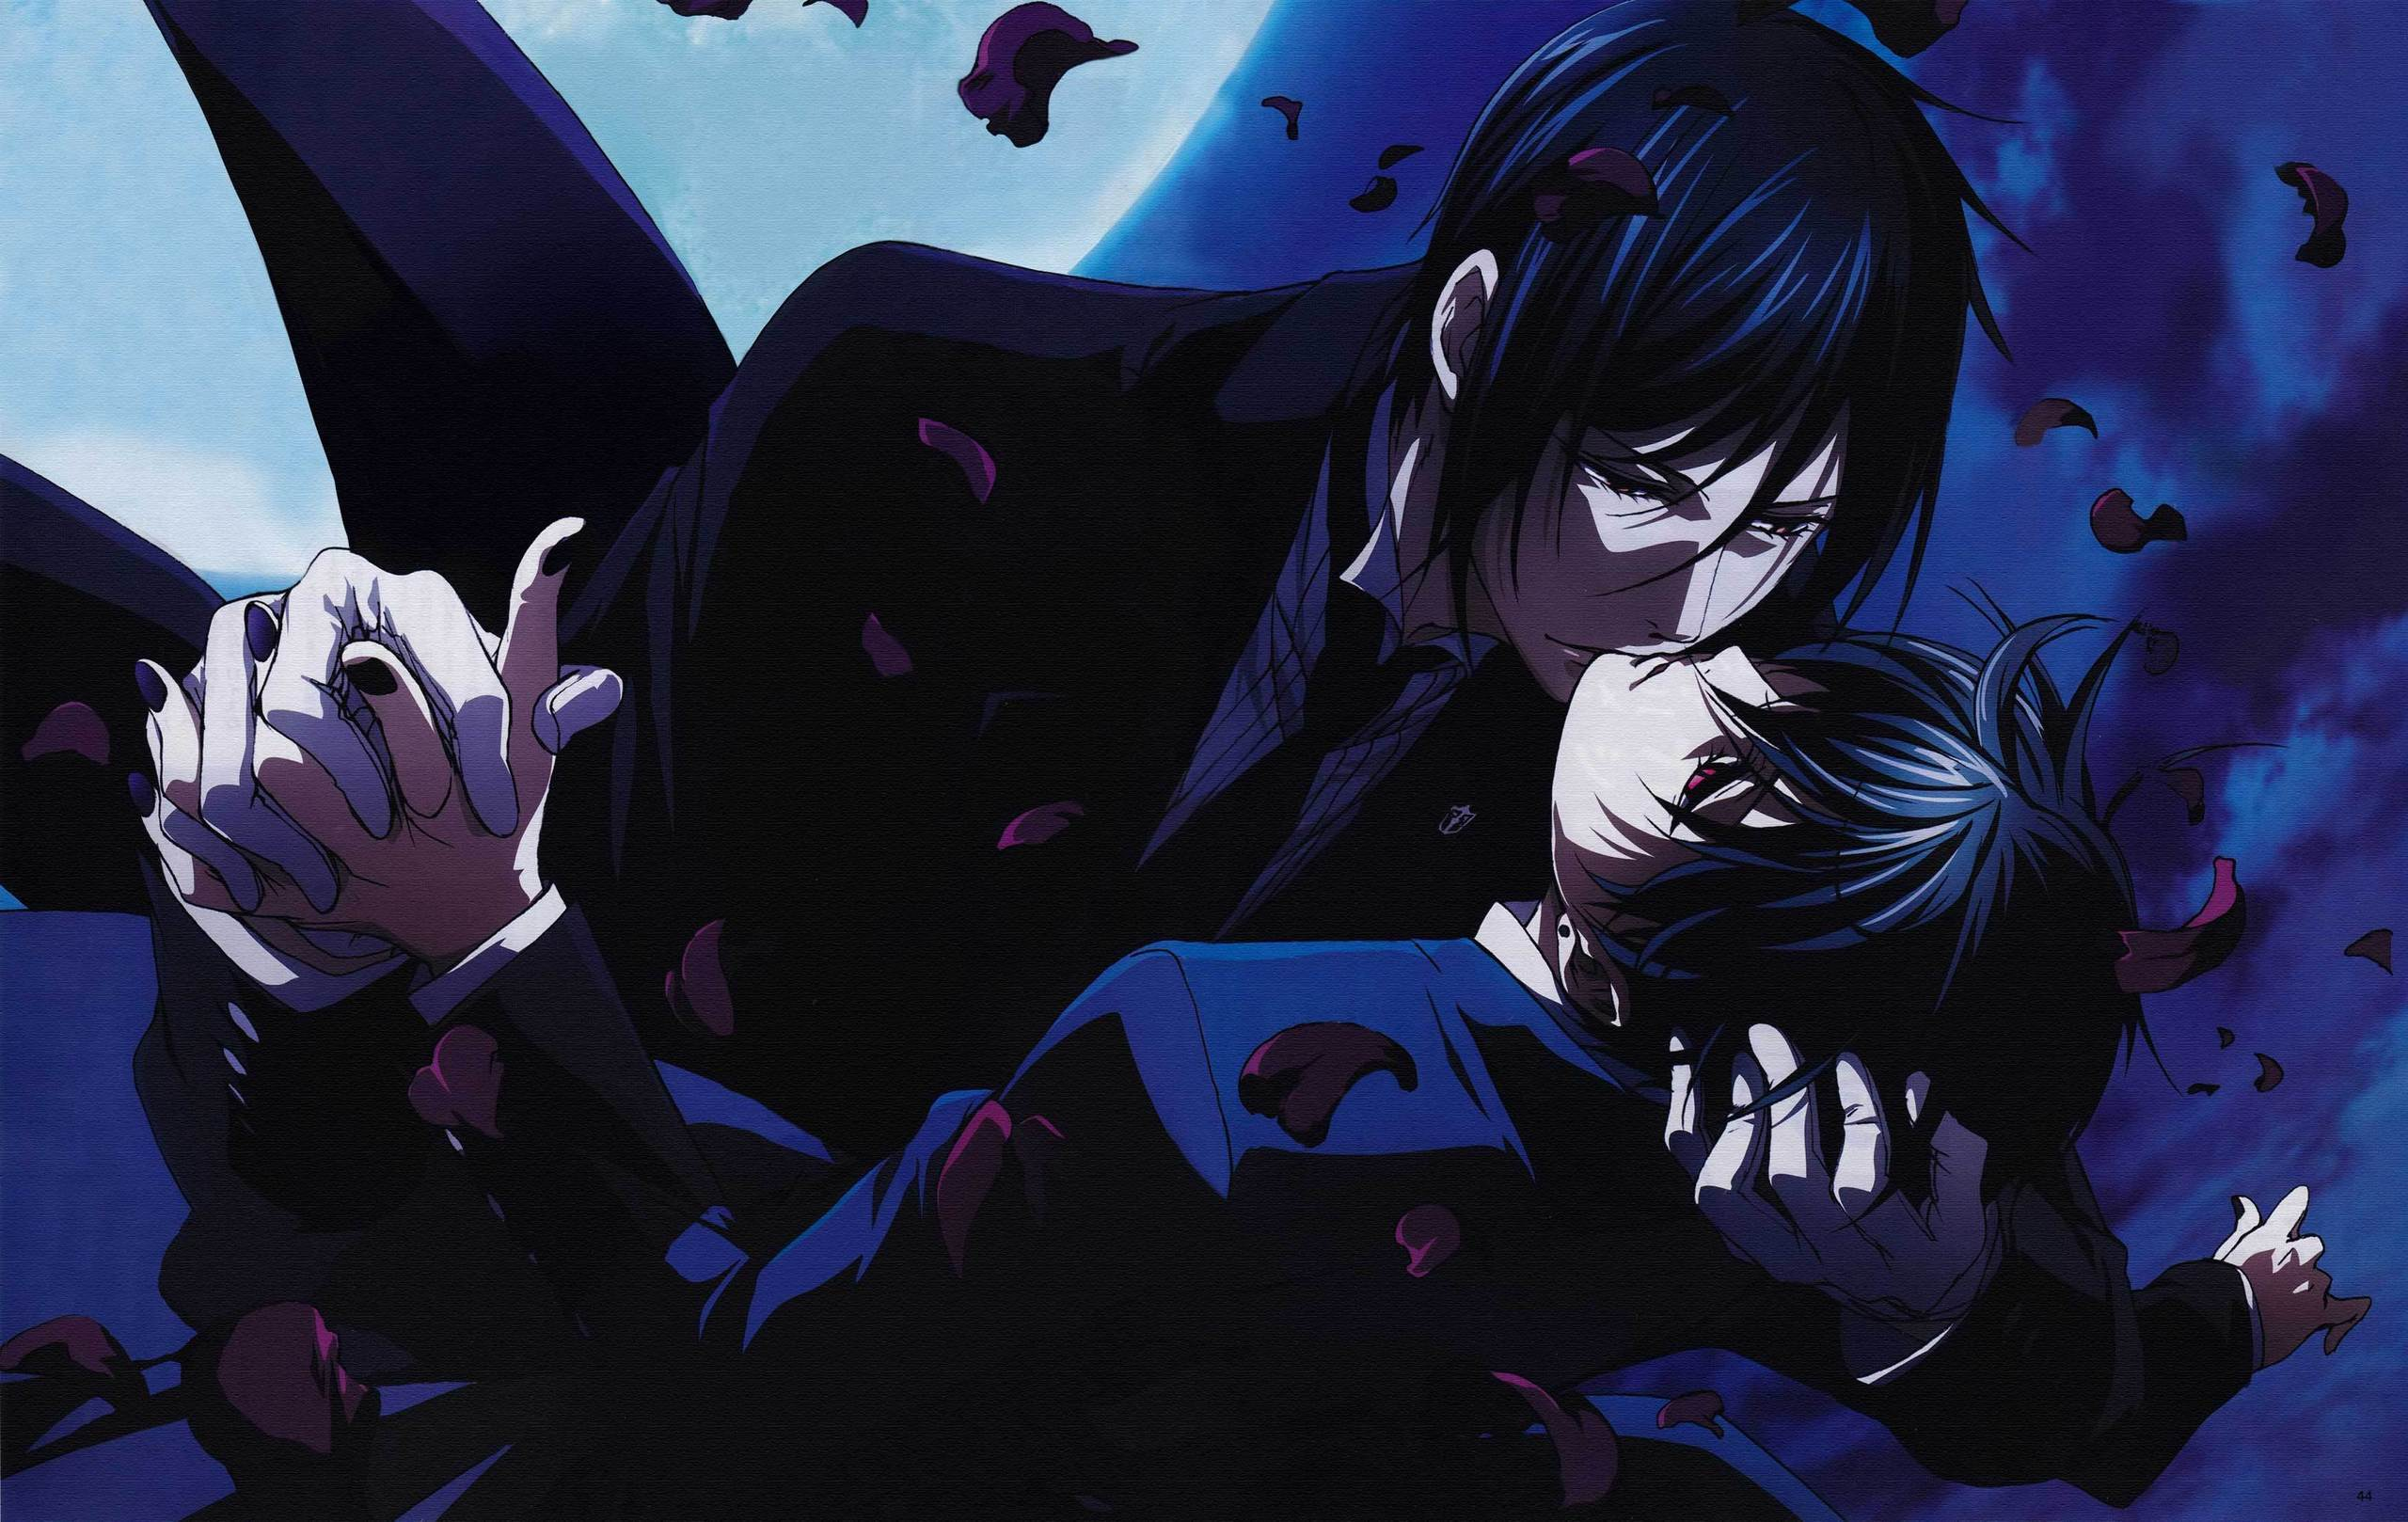 ciel and sebastian kiss - photo #18